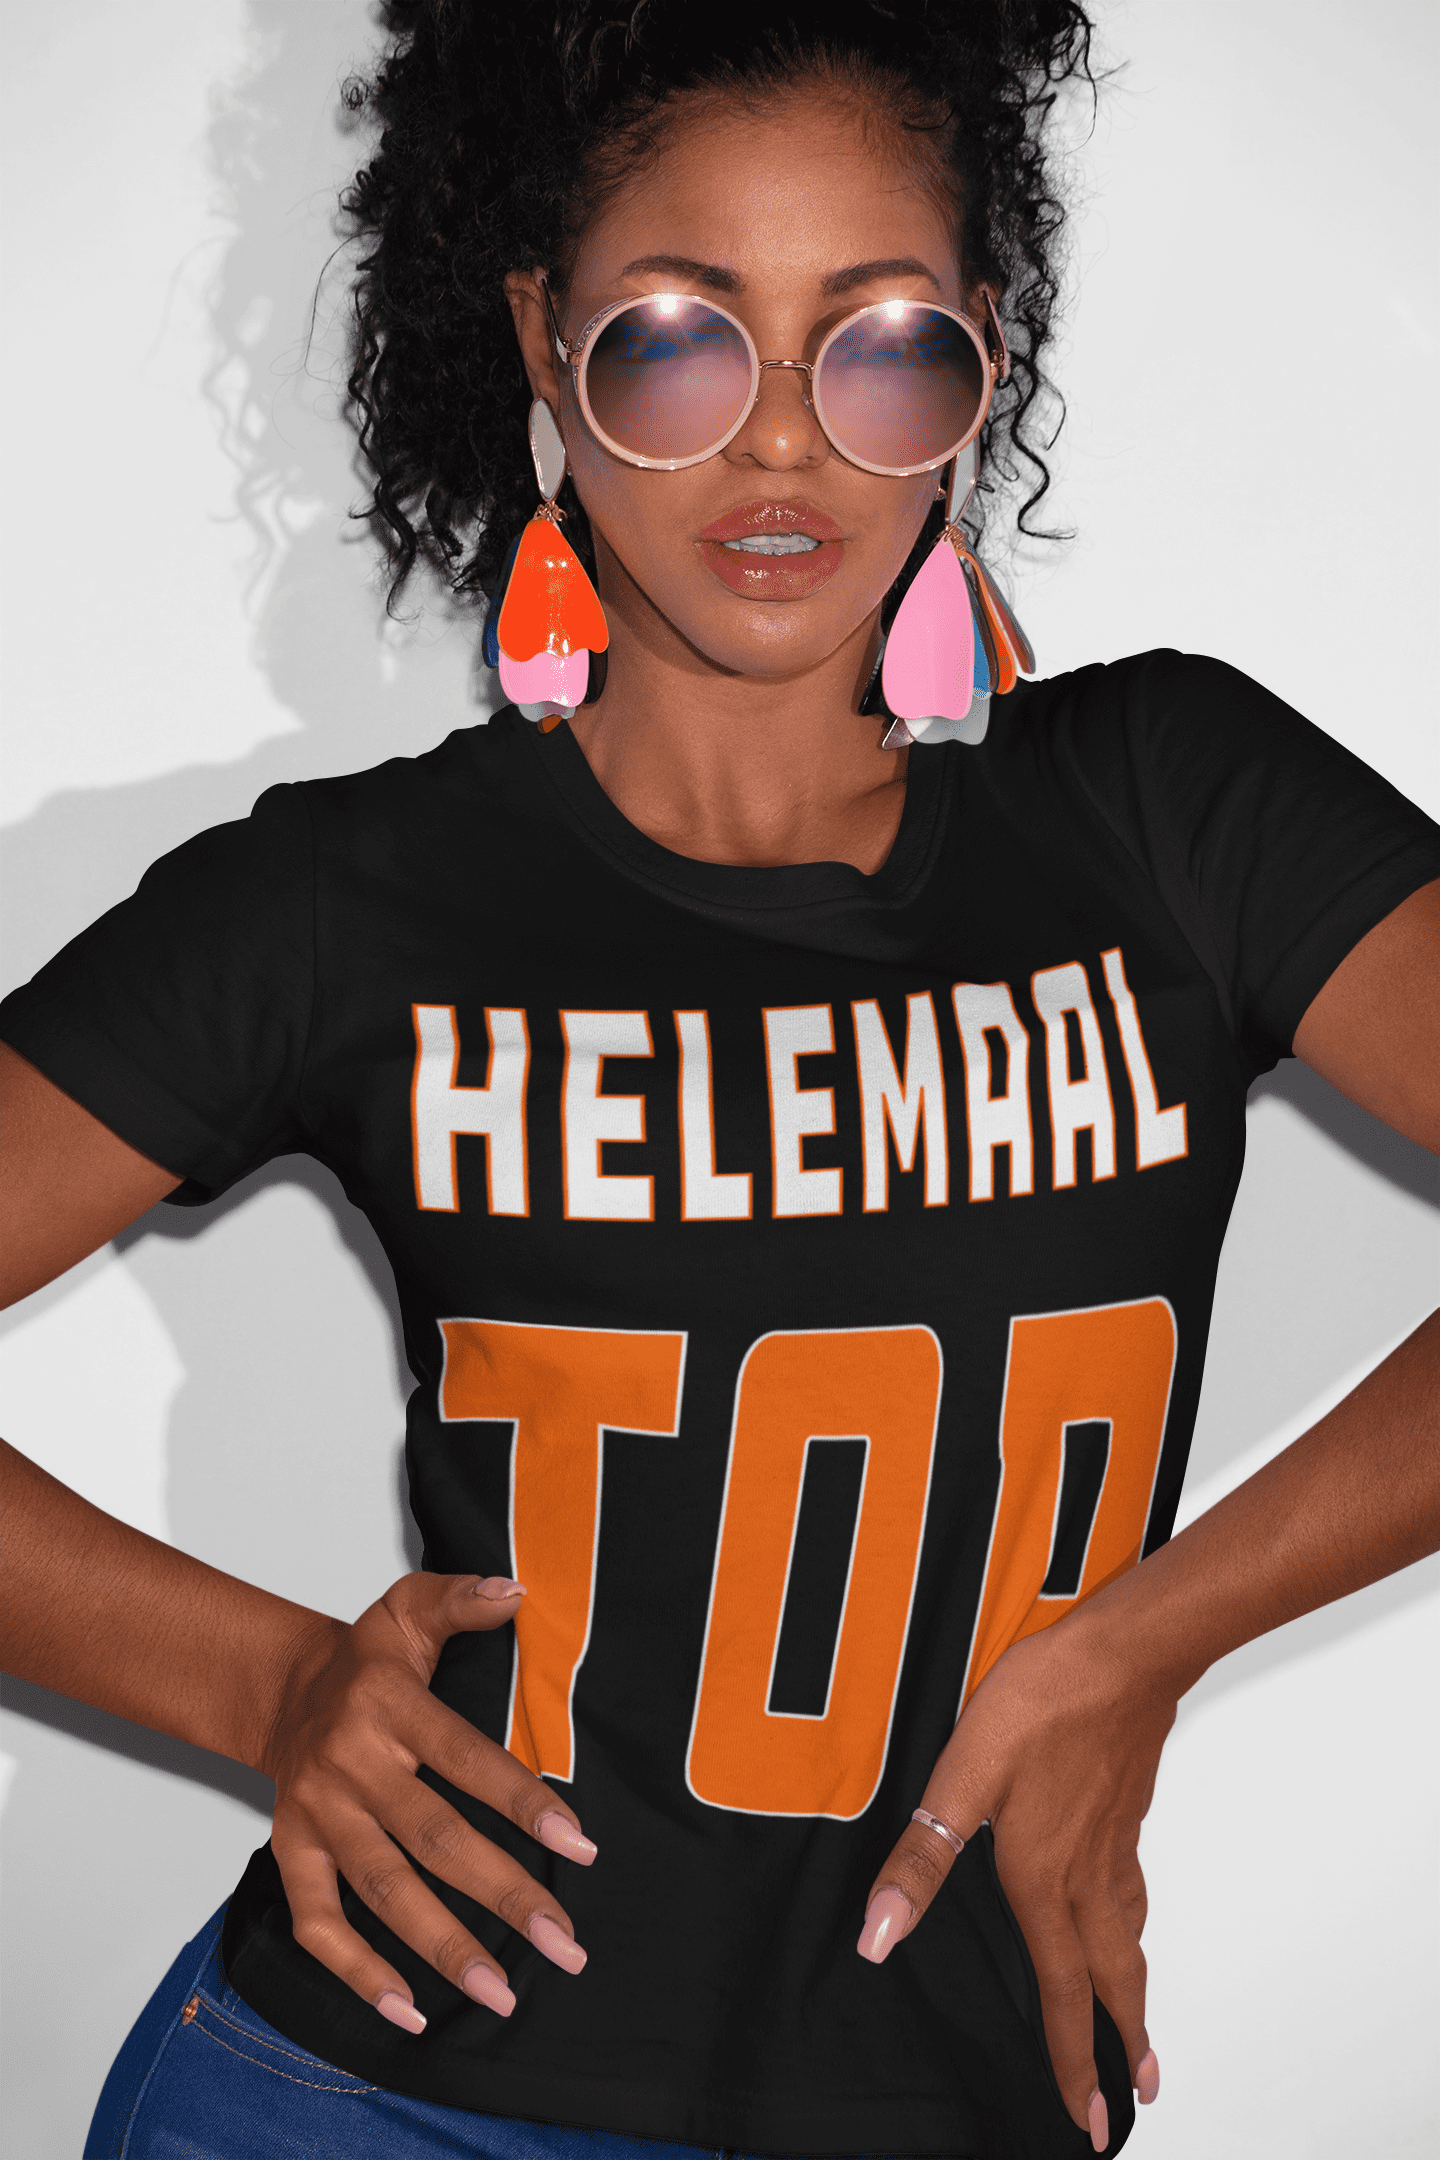 By Jozef - Helemaal Top black